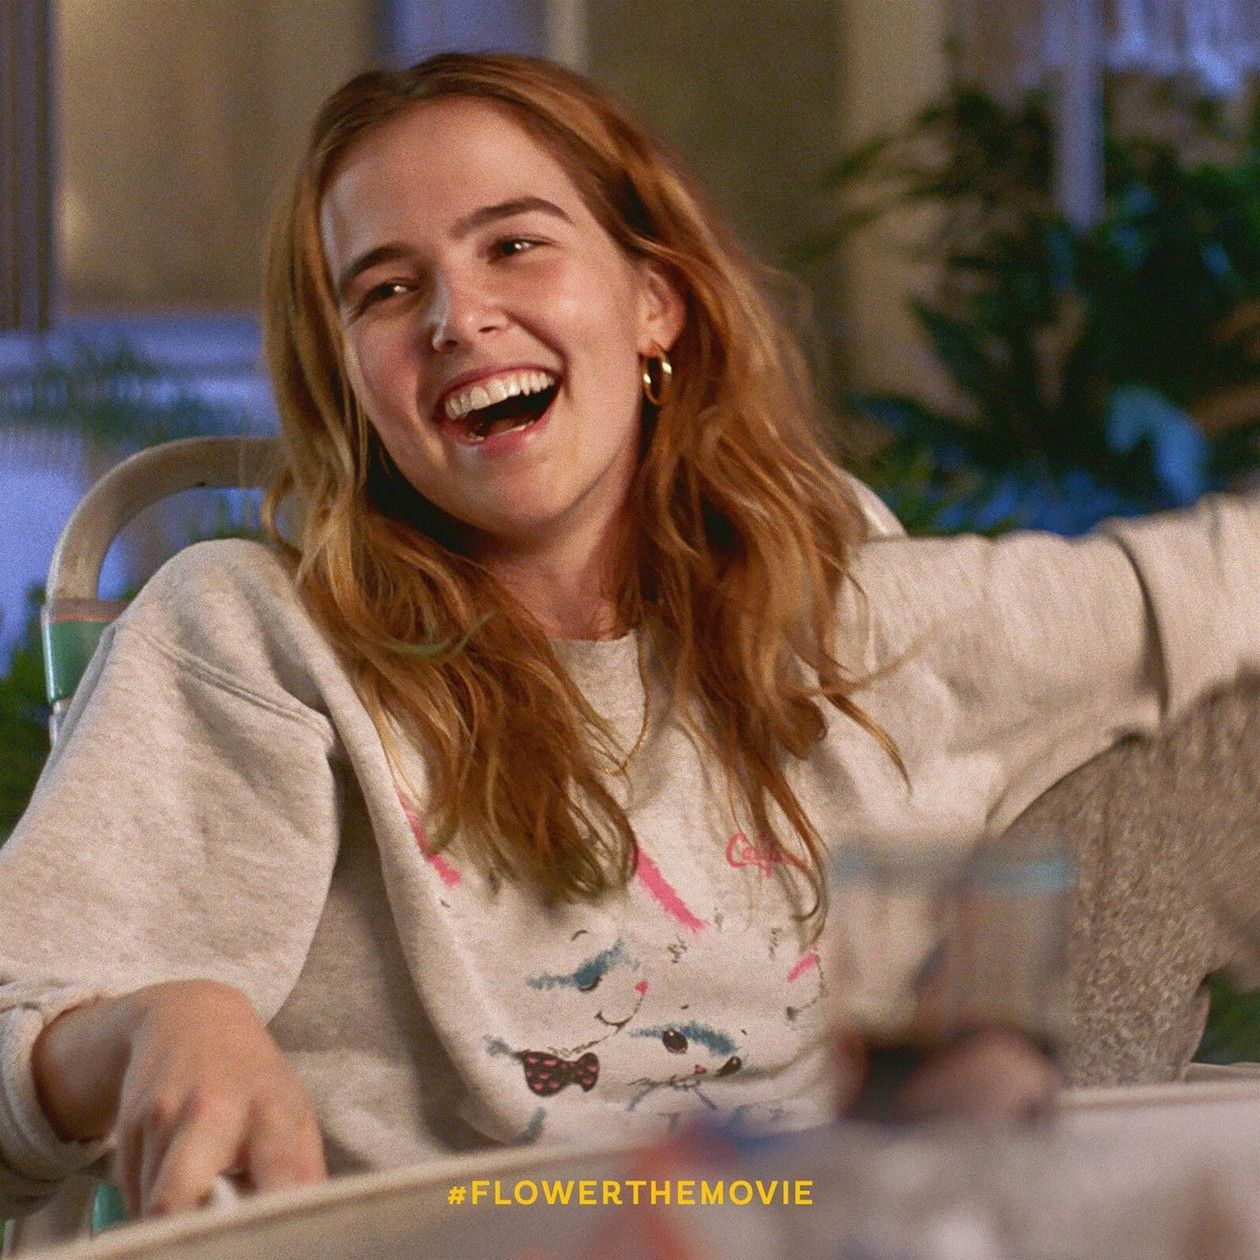 Zoey Deutch actress | Flower / Erica Vandross / Max Winkler 2017 Teaser Movie Poster Affichette film